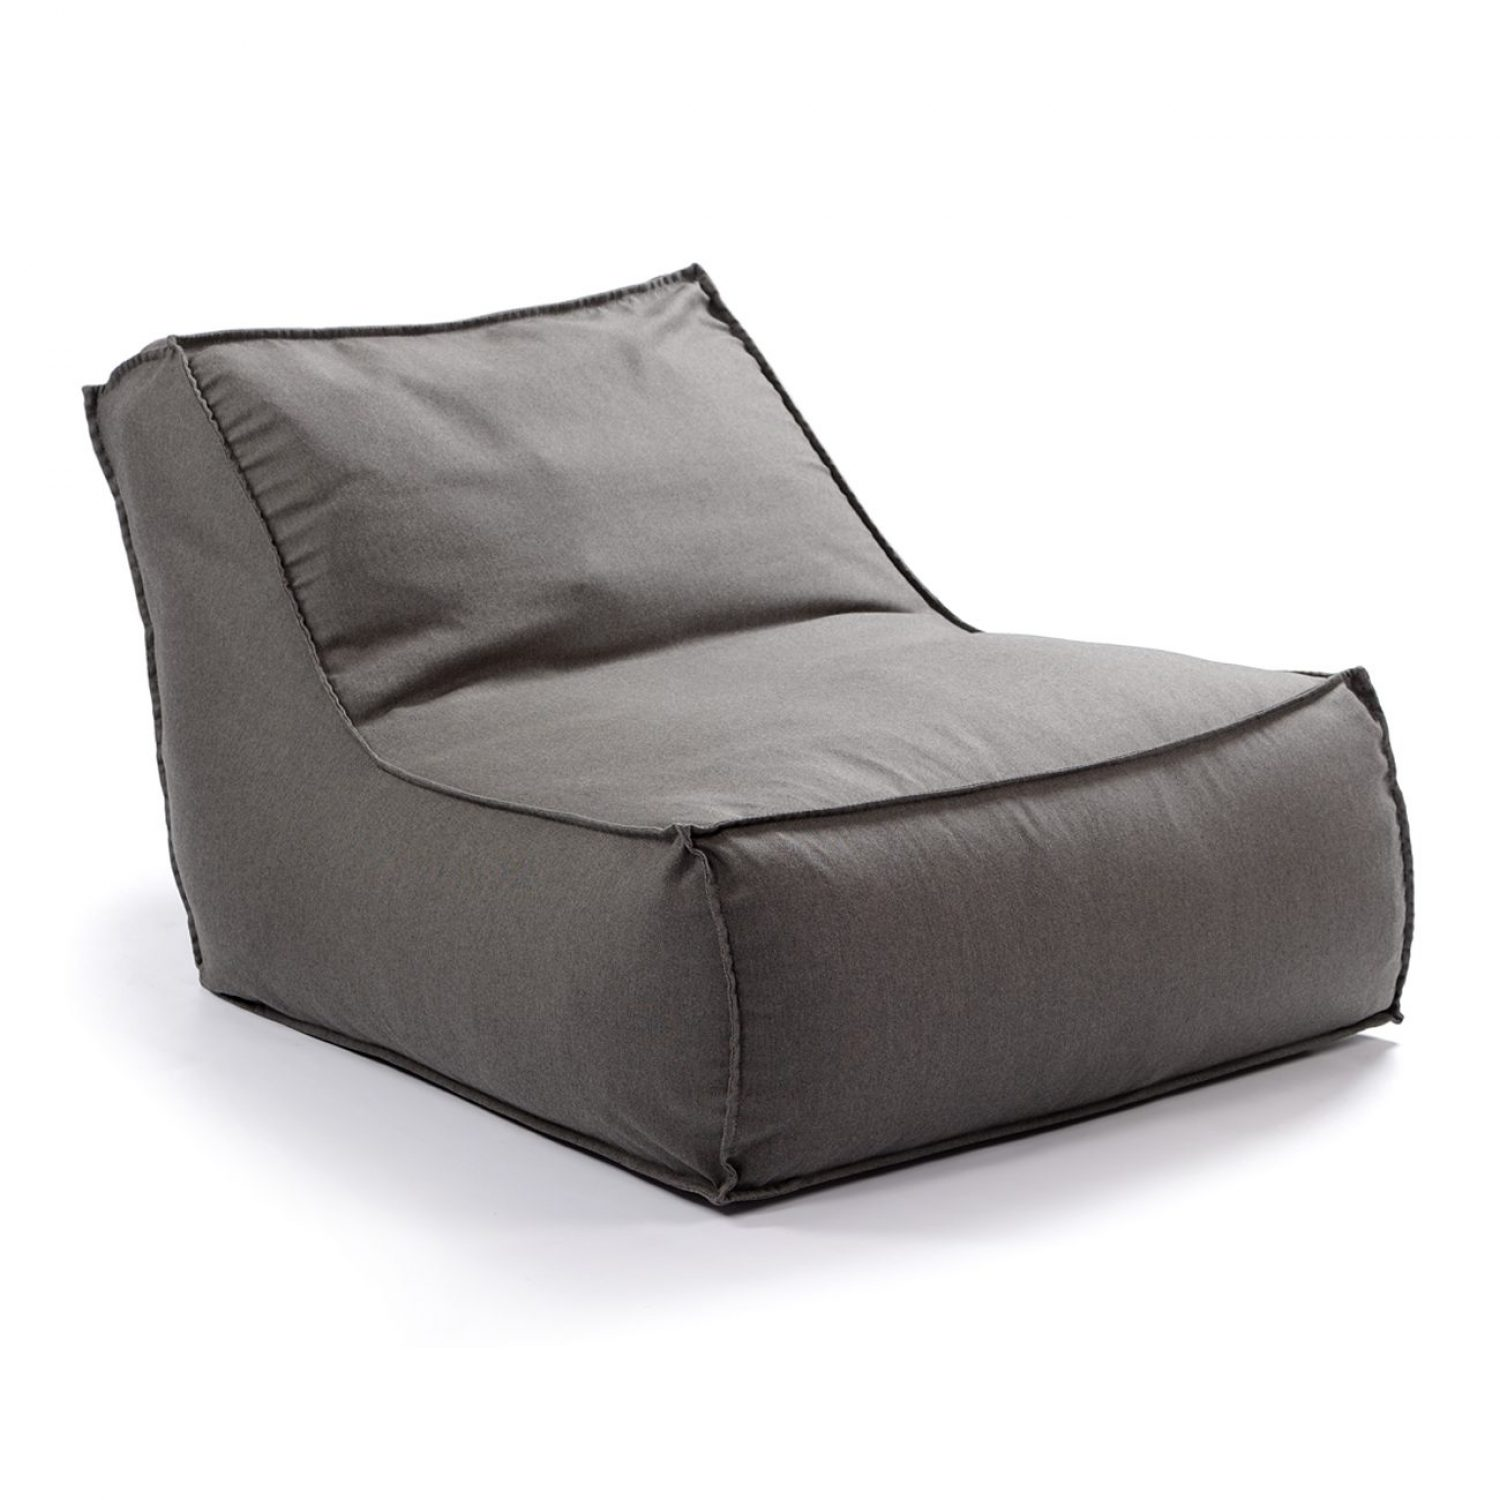 Oasis Bean Bag - Small